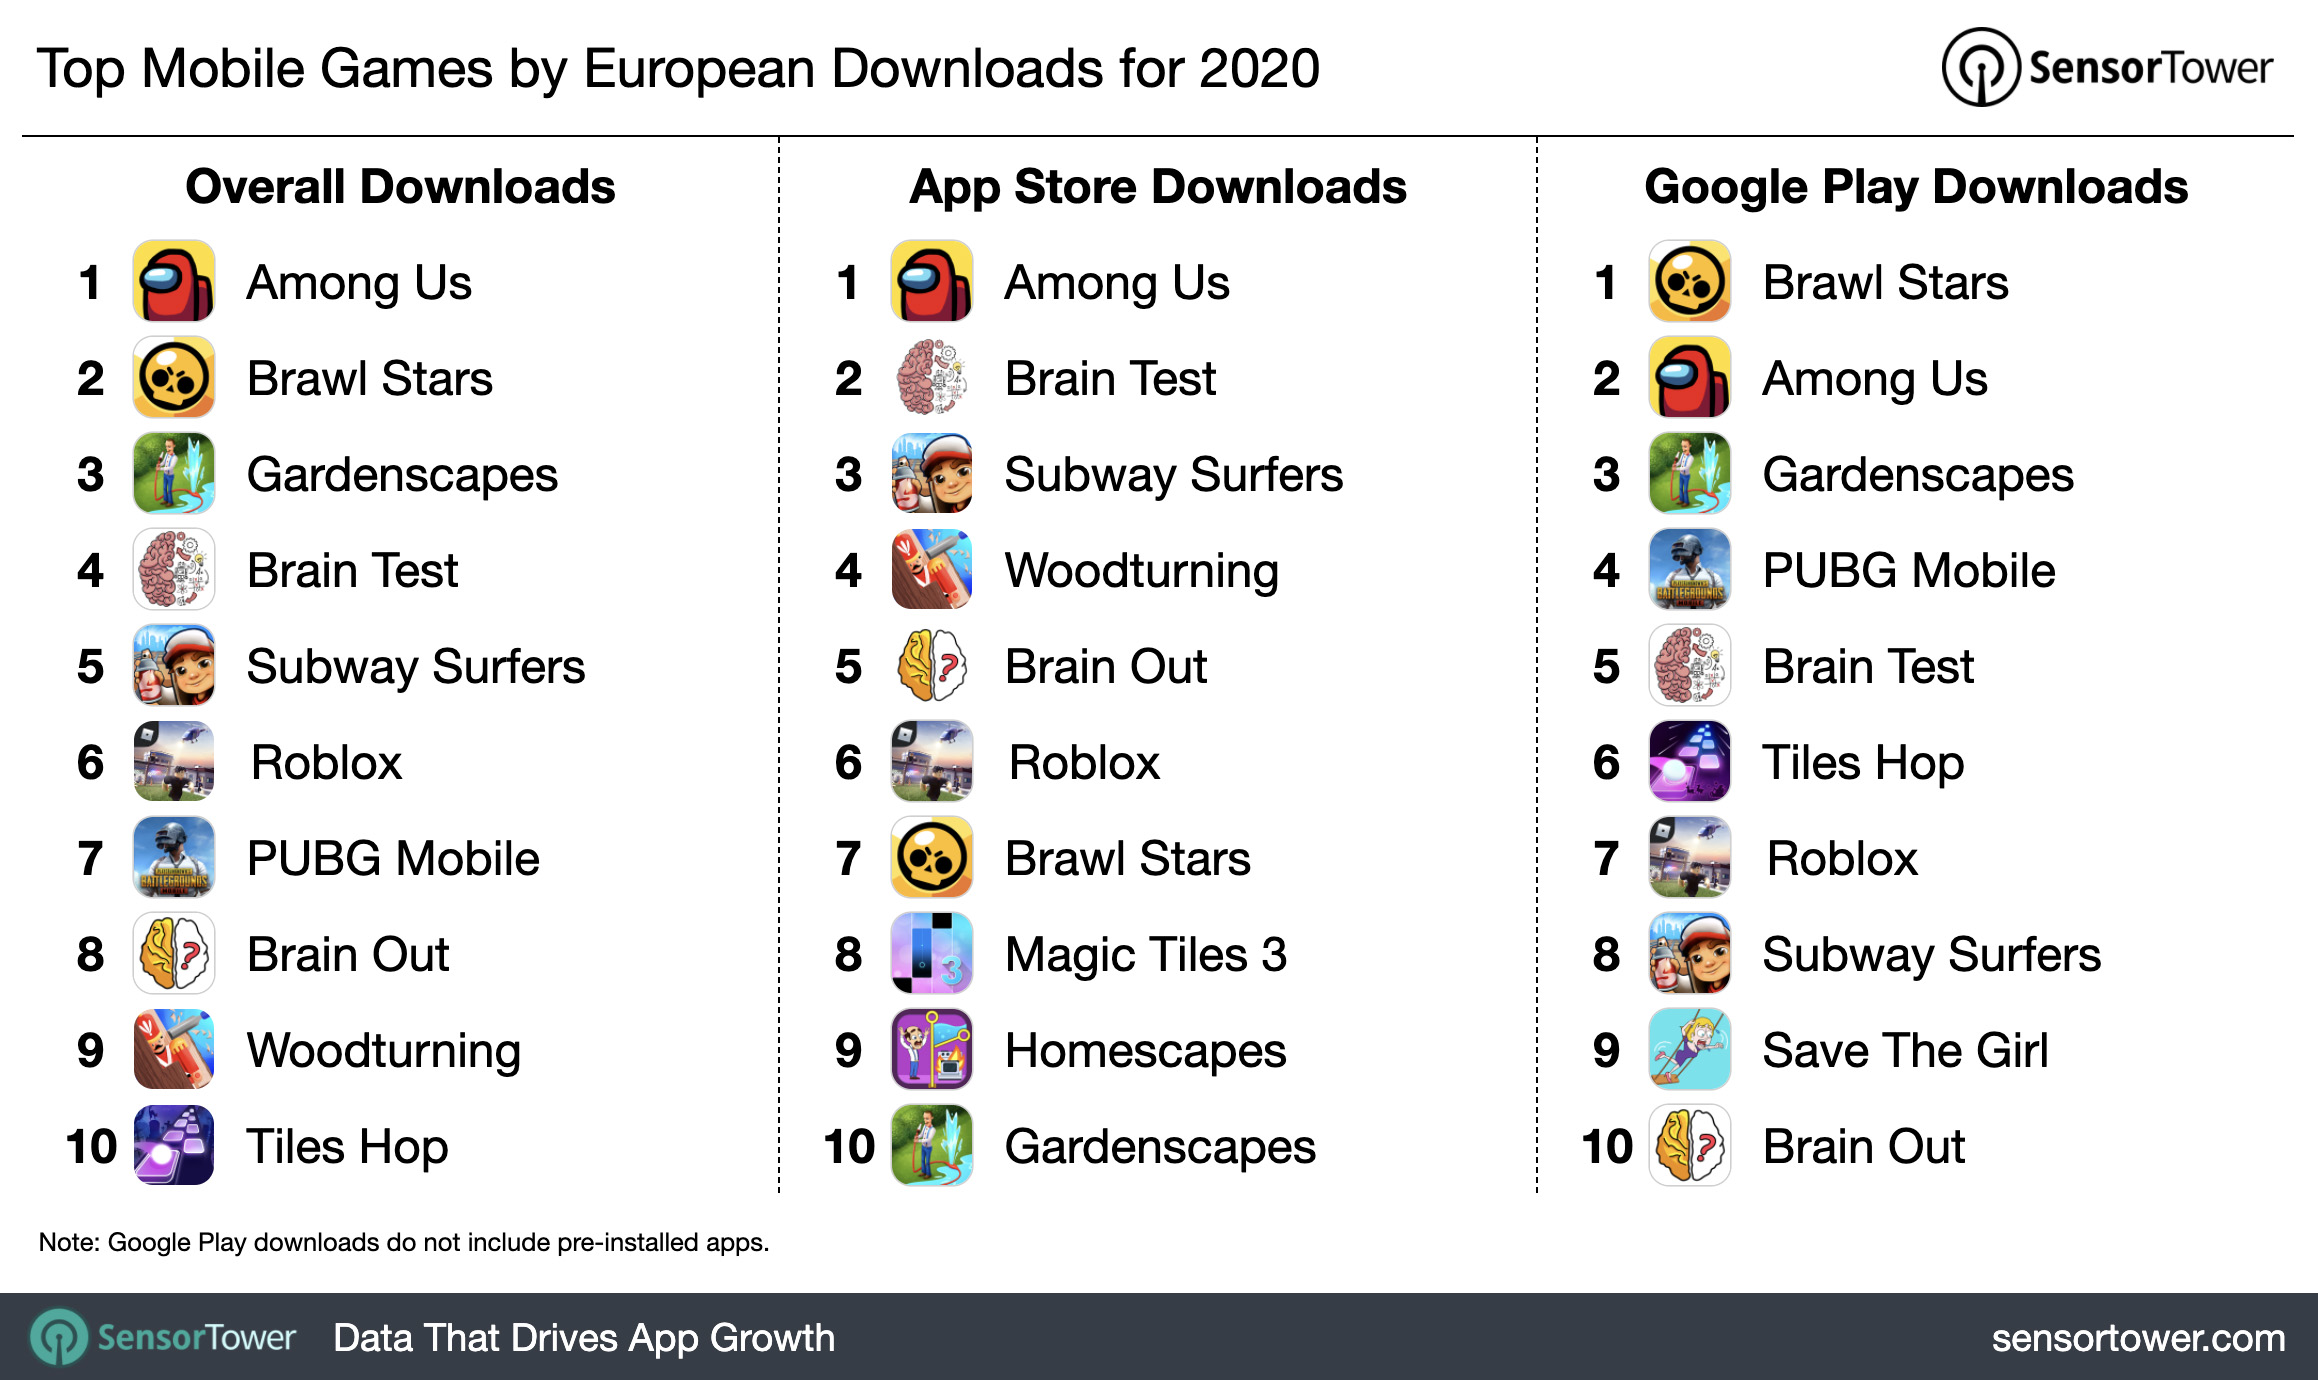 Top Mobile Games by European Downloads for 2020